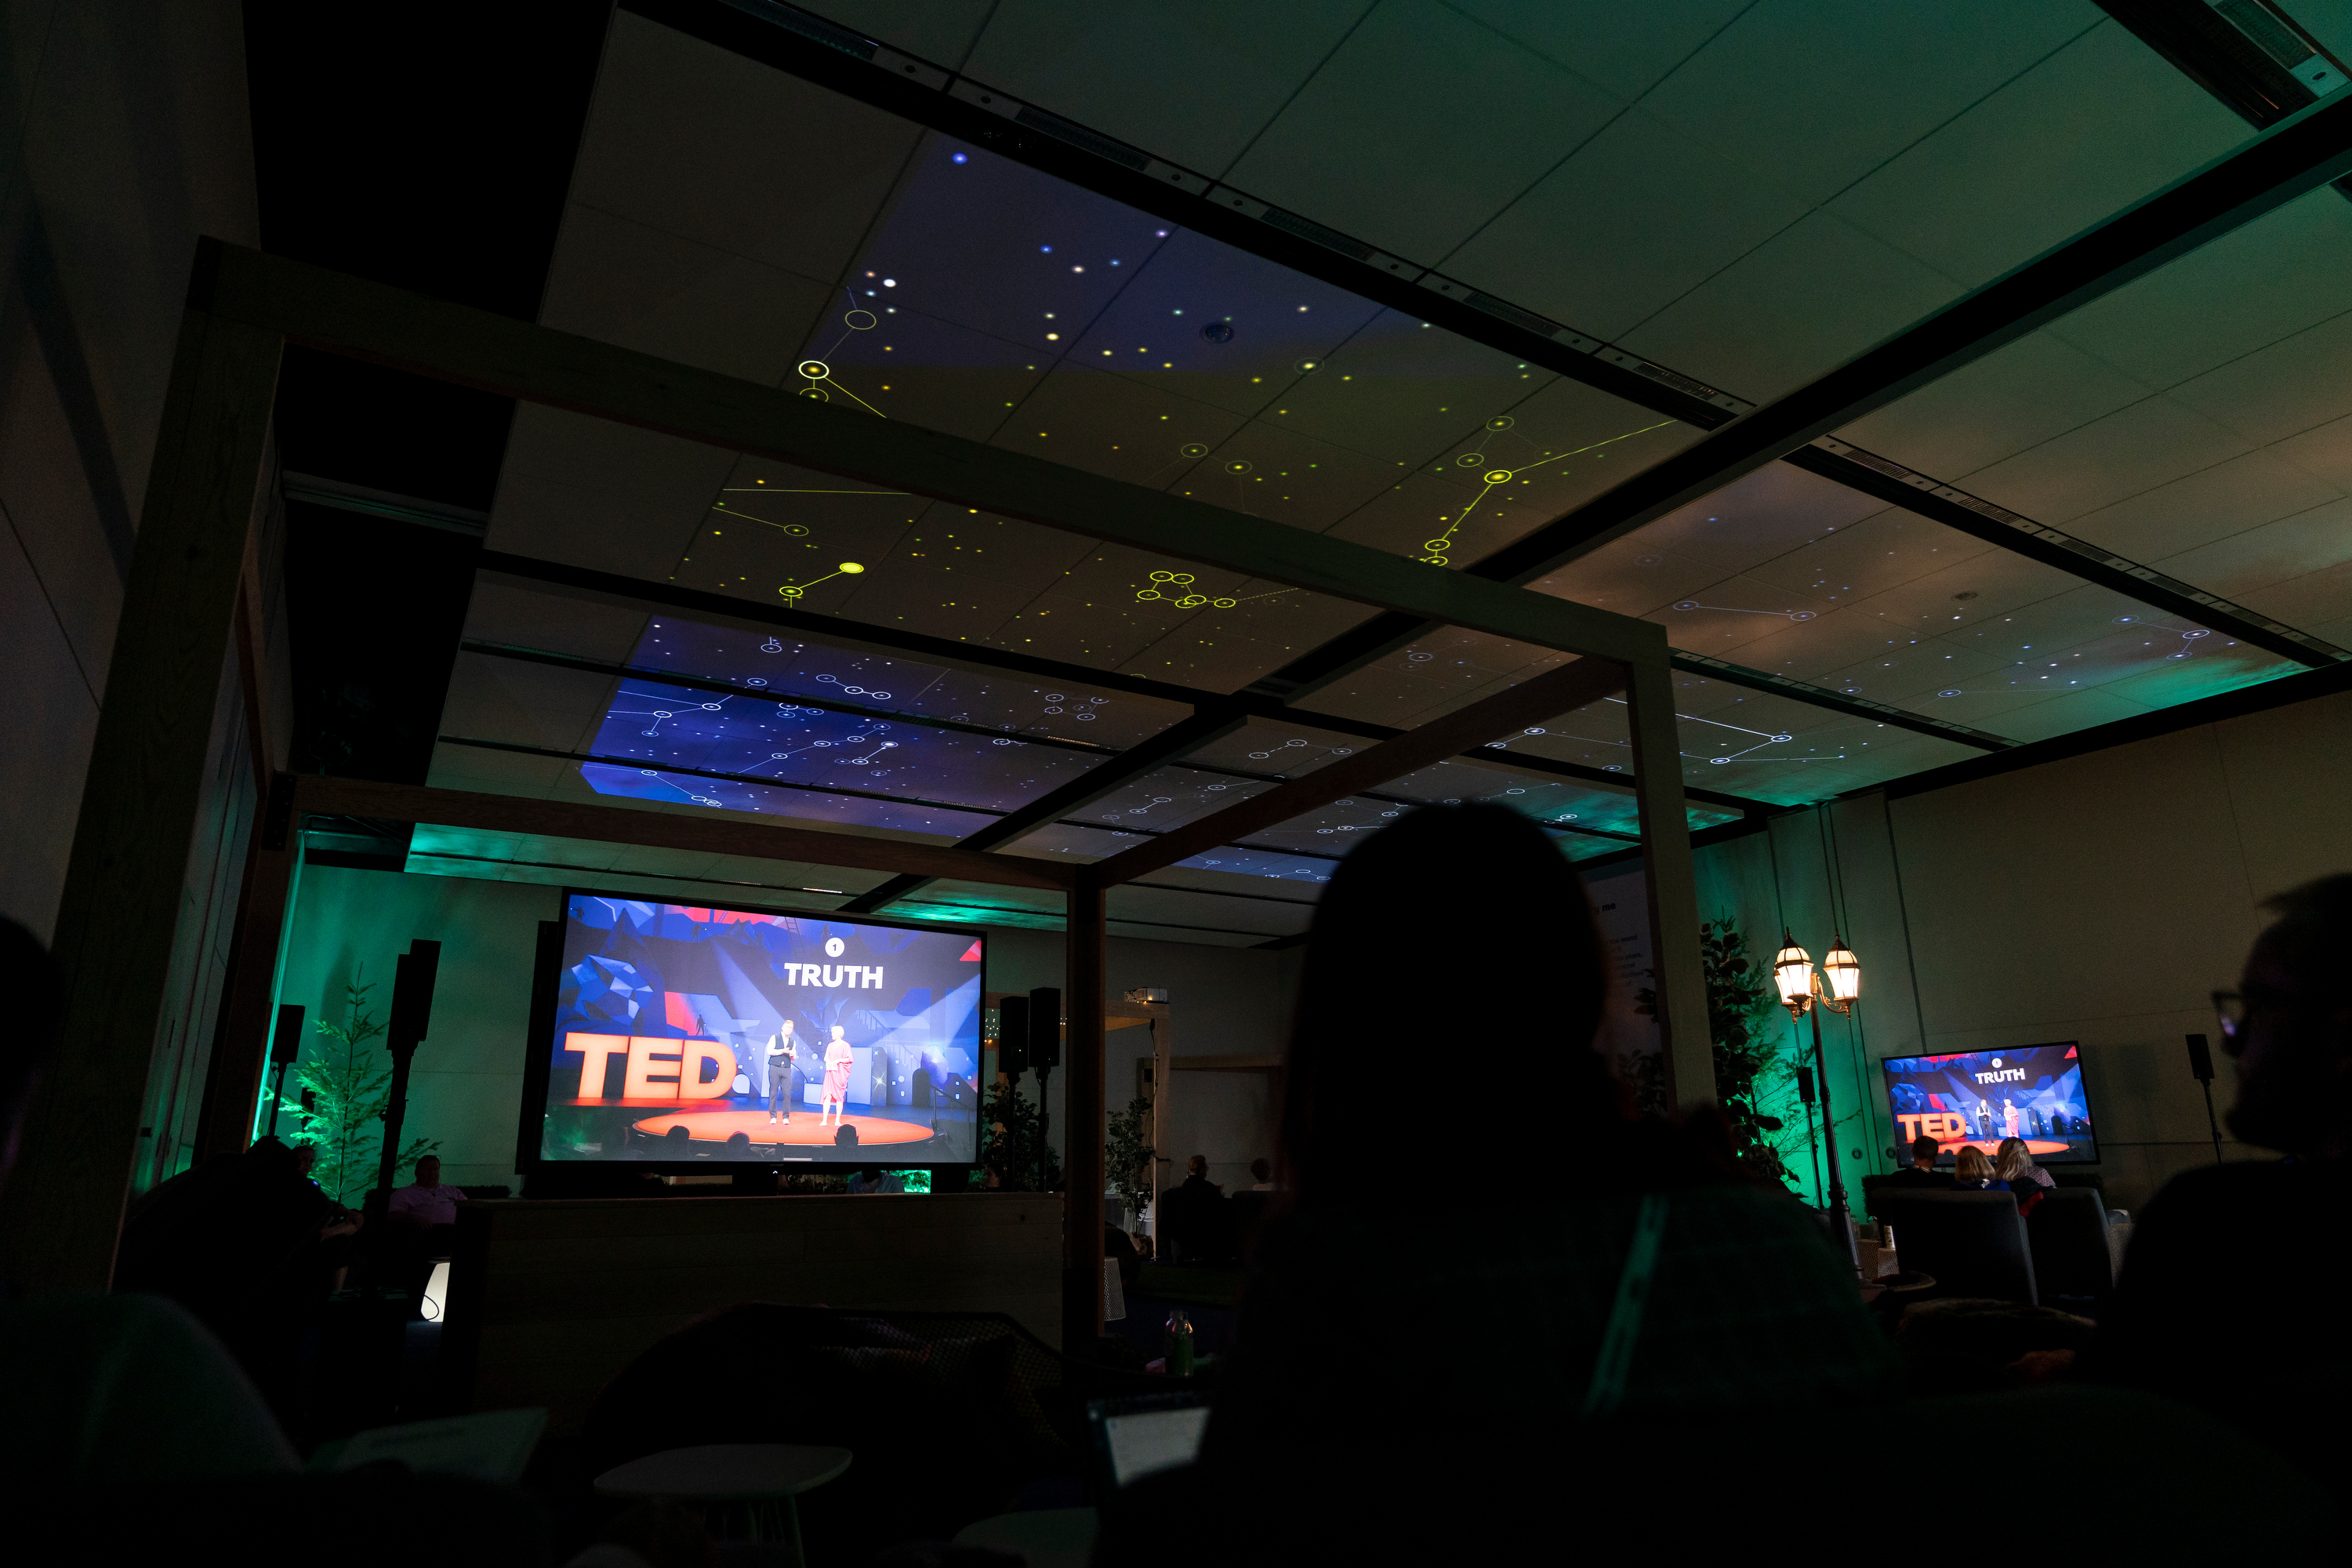 A meditative soundscape and a ceiling full of stars turned this simulcast space into a calm, relaxing environment, thanks to sound design from Meyer Sound.